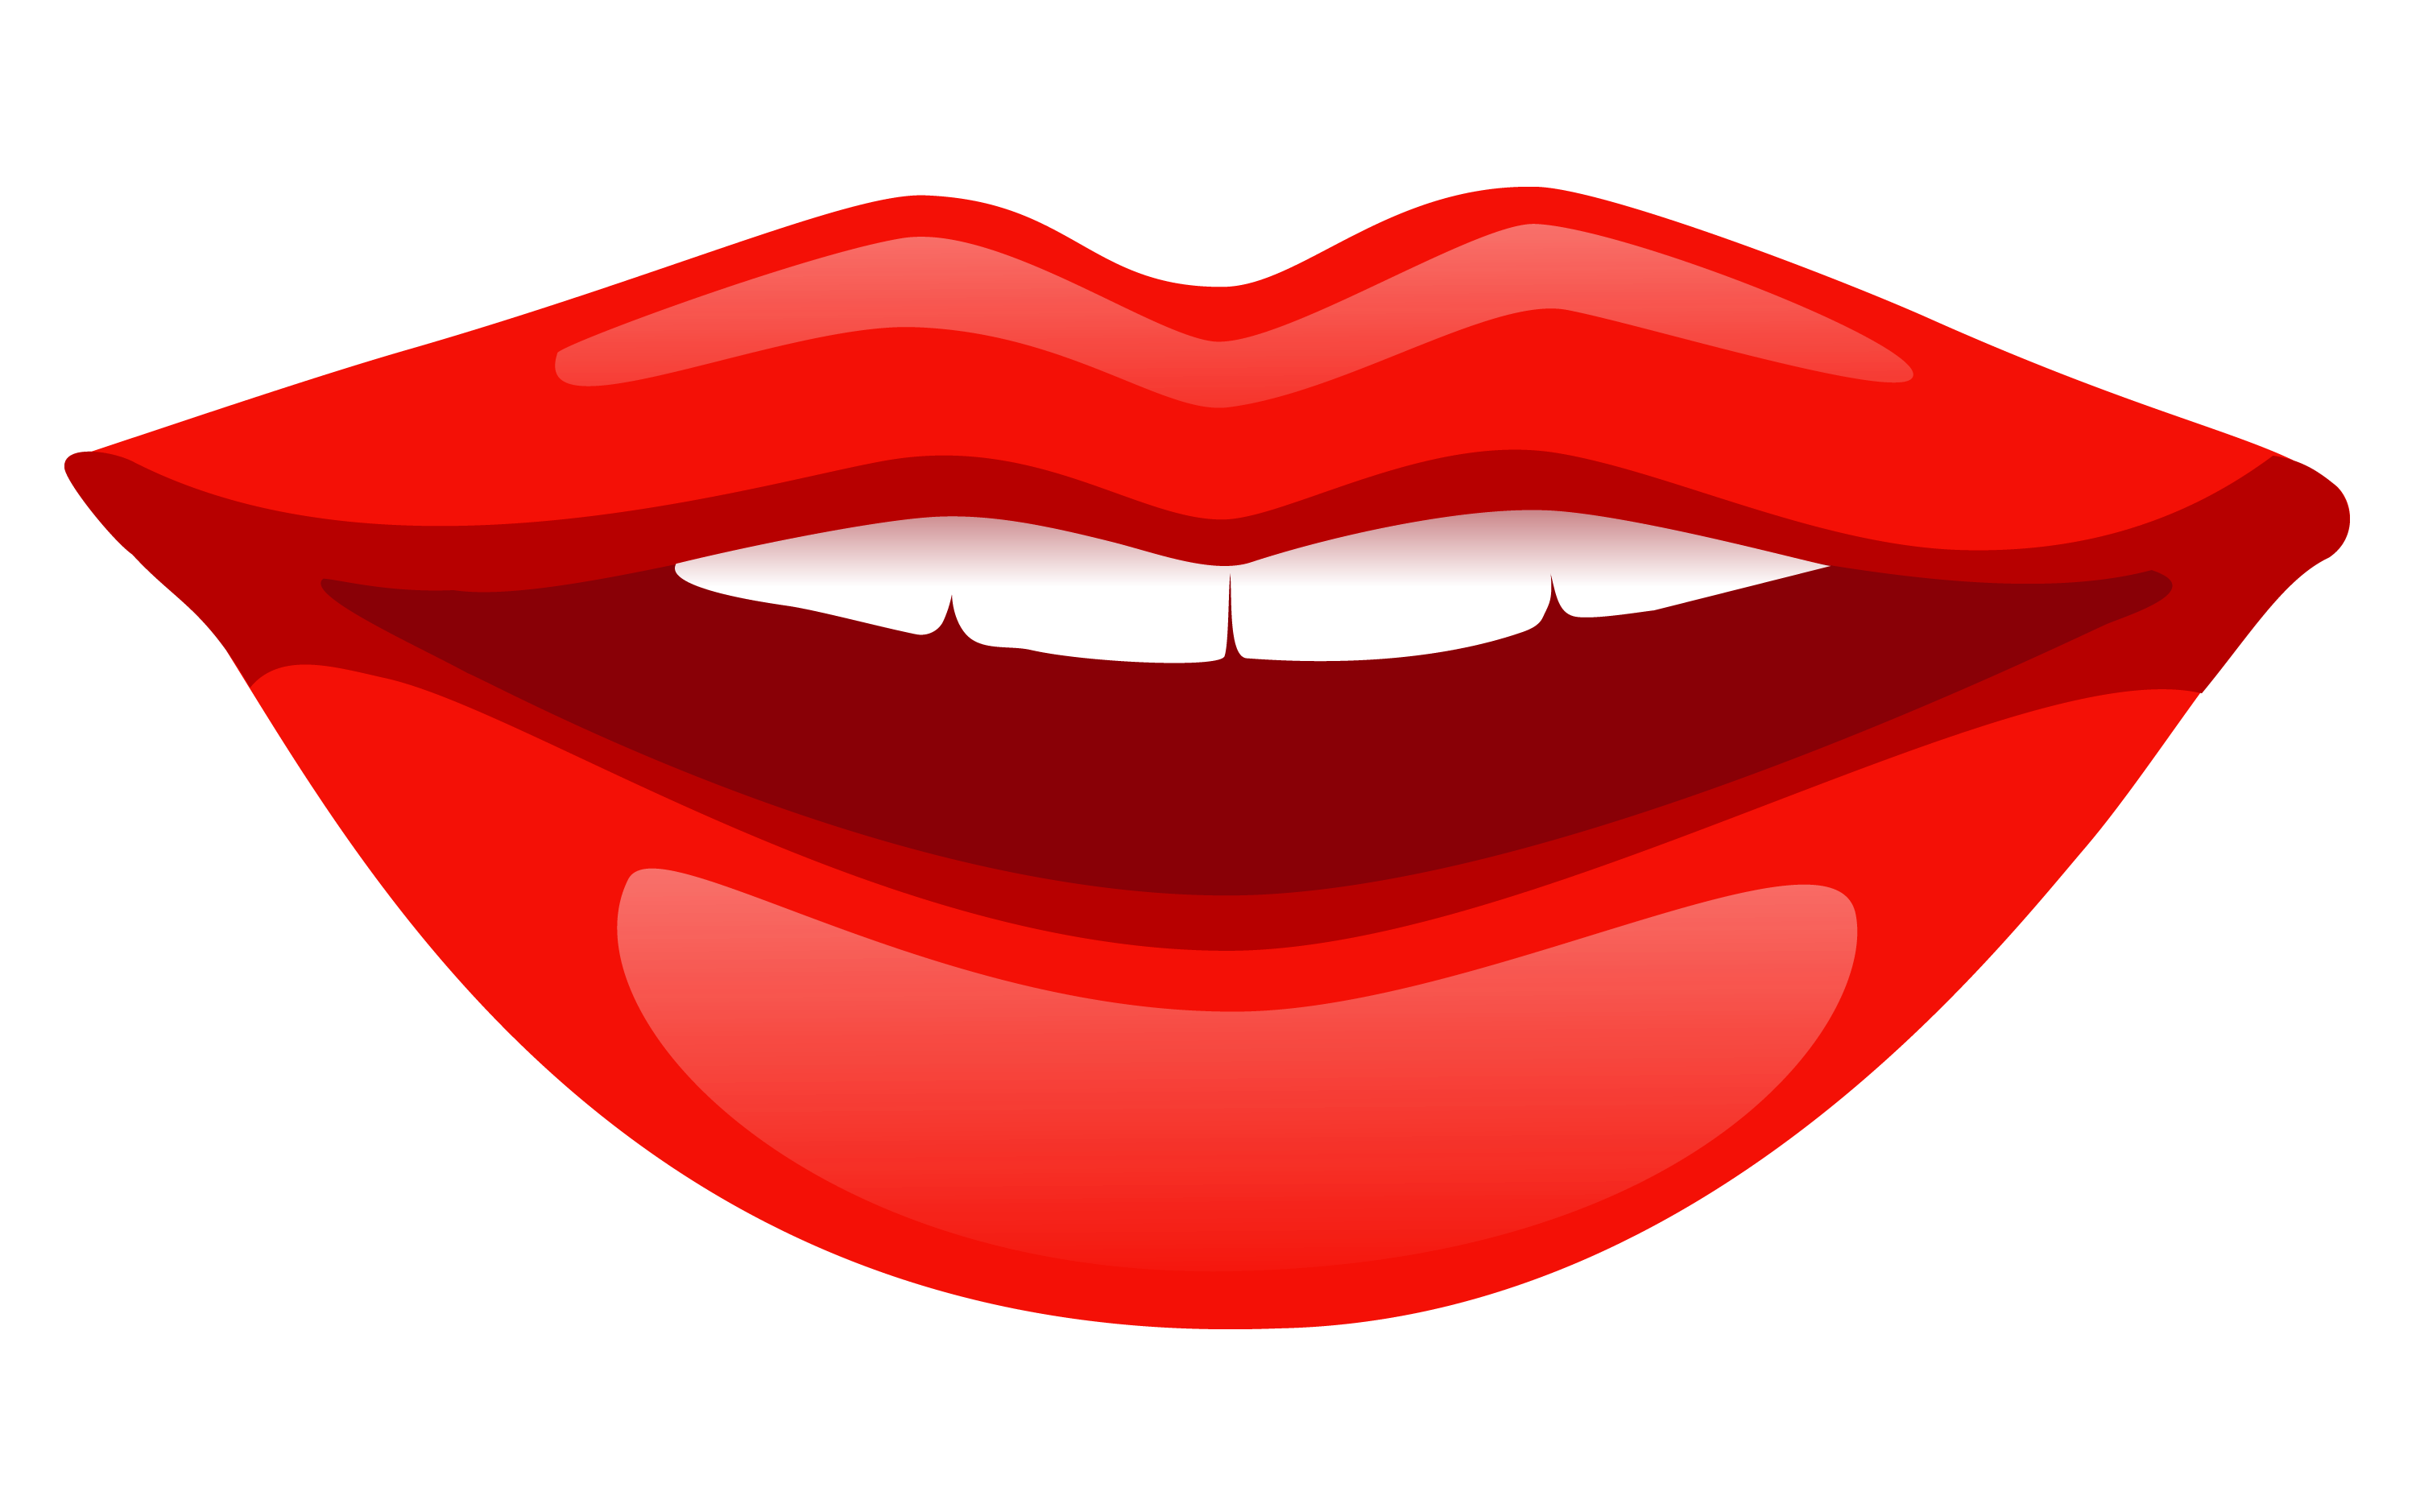 Mouth Clipart Tongue Mouth Tongue Transparent Free For Download On Webstockreview 2020 | view 96 mouth illustration, images and graphics from +50,000 possibilities. mouth clipart tongue mouth tongue